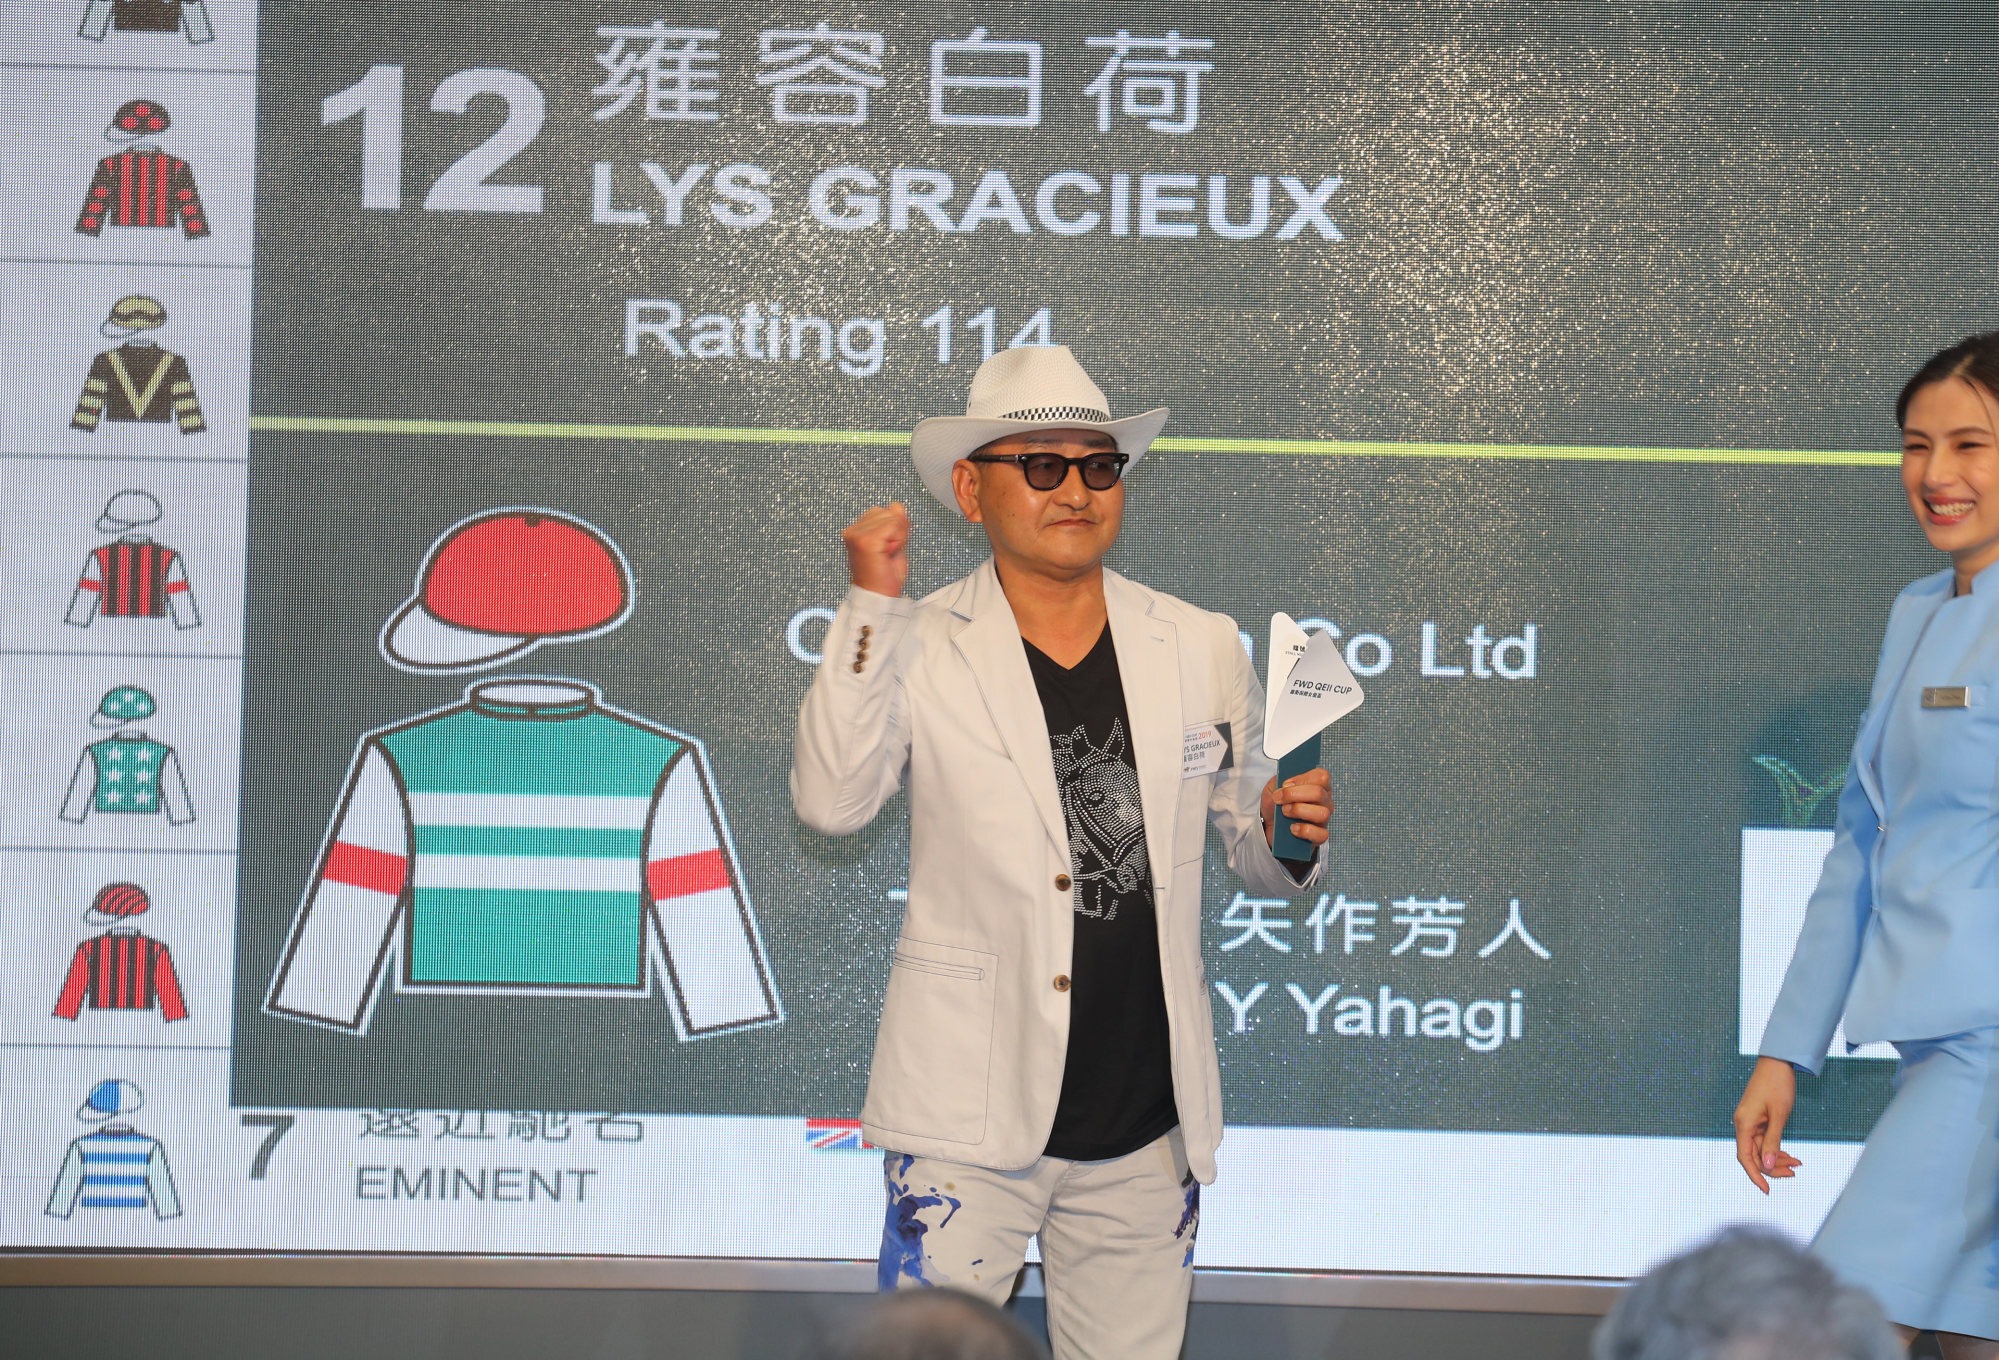 Trainer Yoshito Yahagi draws the barrier for Lys Gracieux in the 2019 QE II Cup.